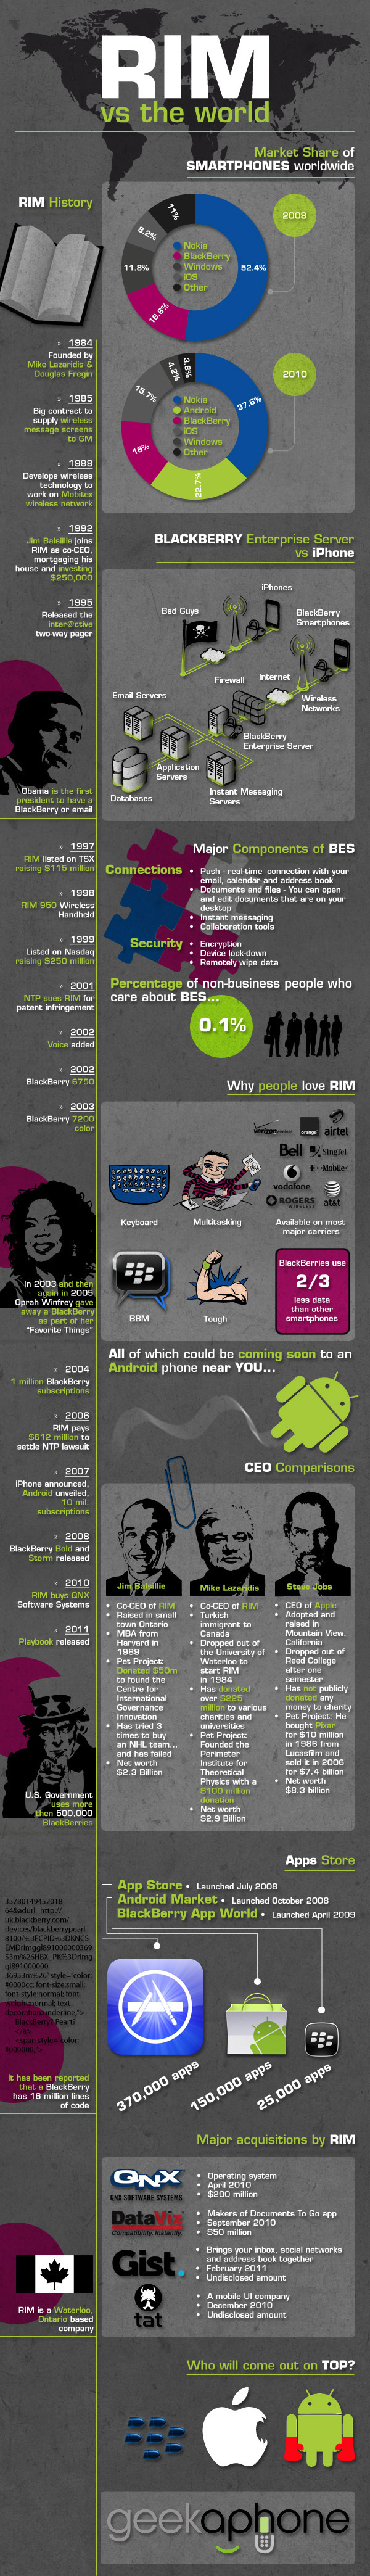 geekaphone: rim vs the world infographic